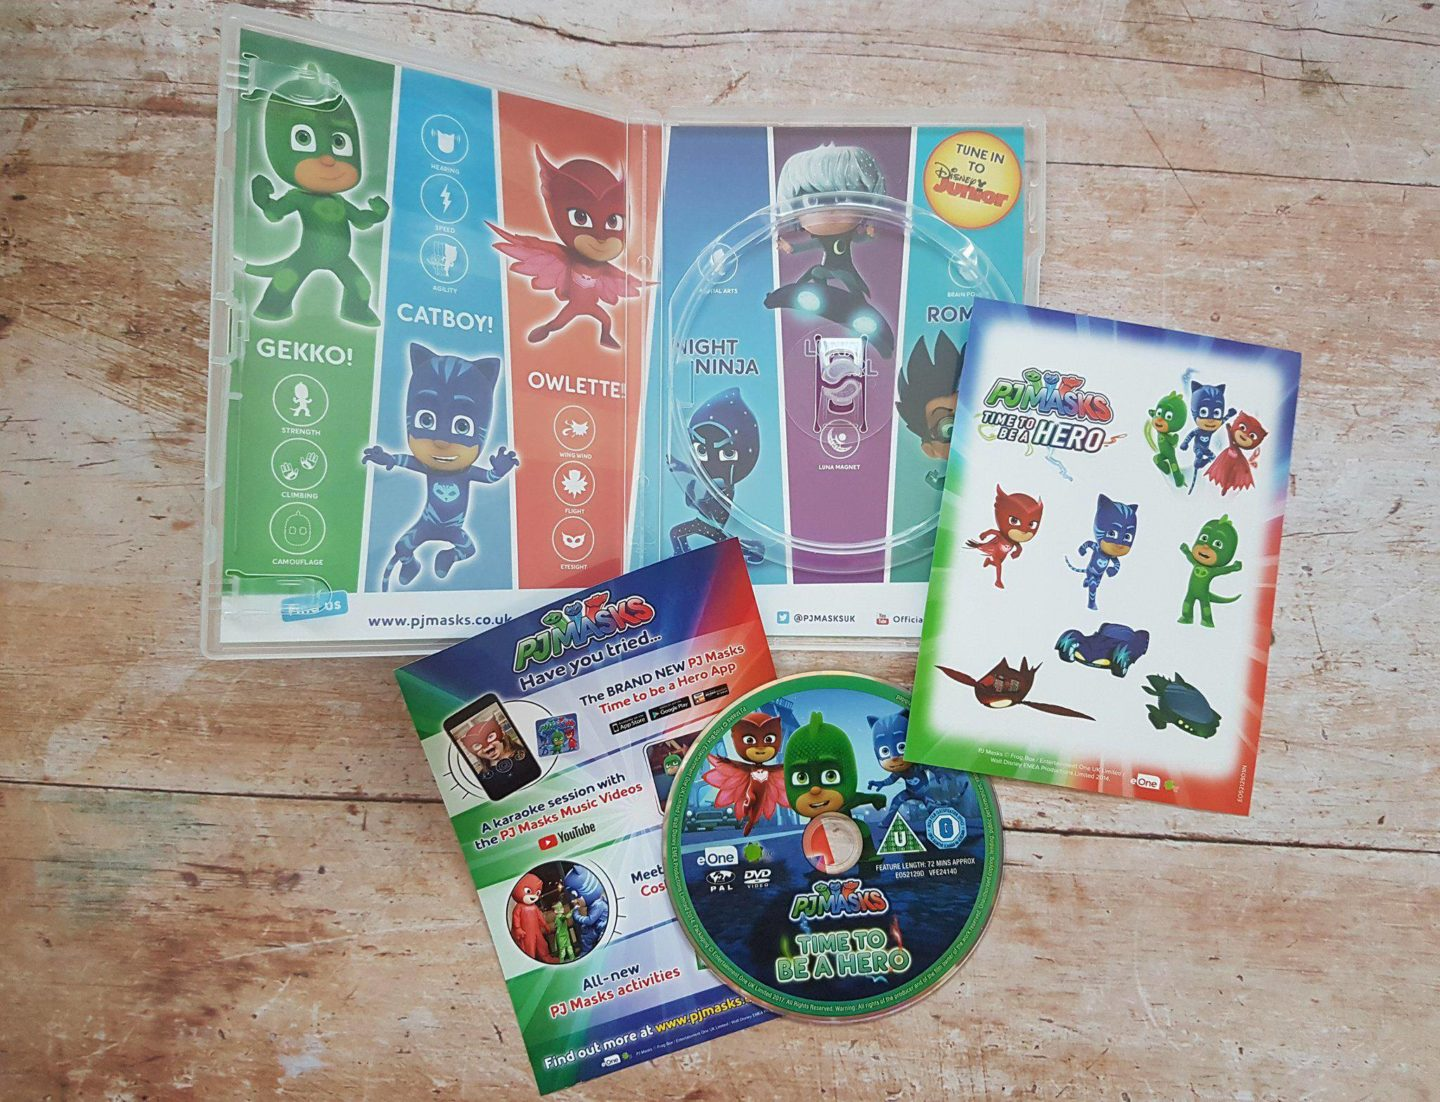 PJ Masks DVD Review